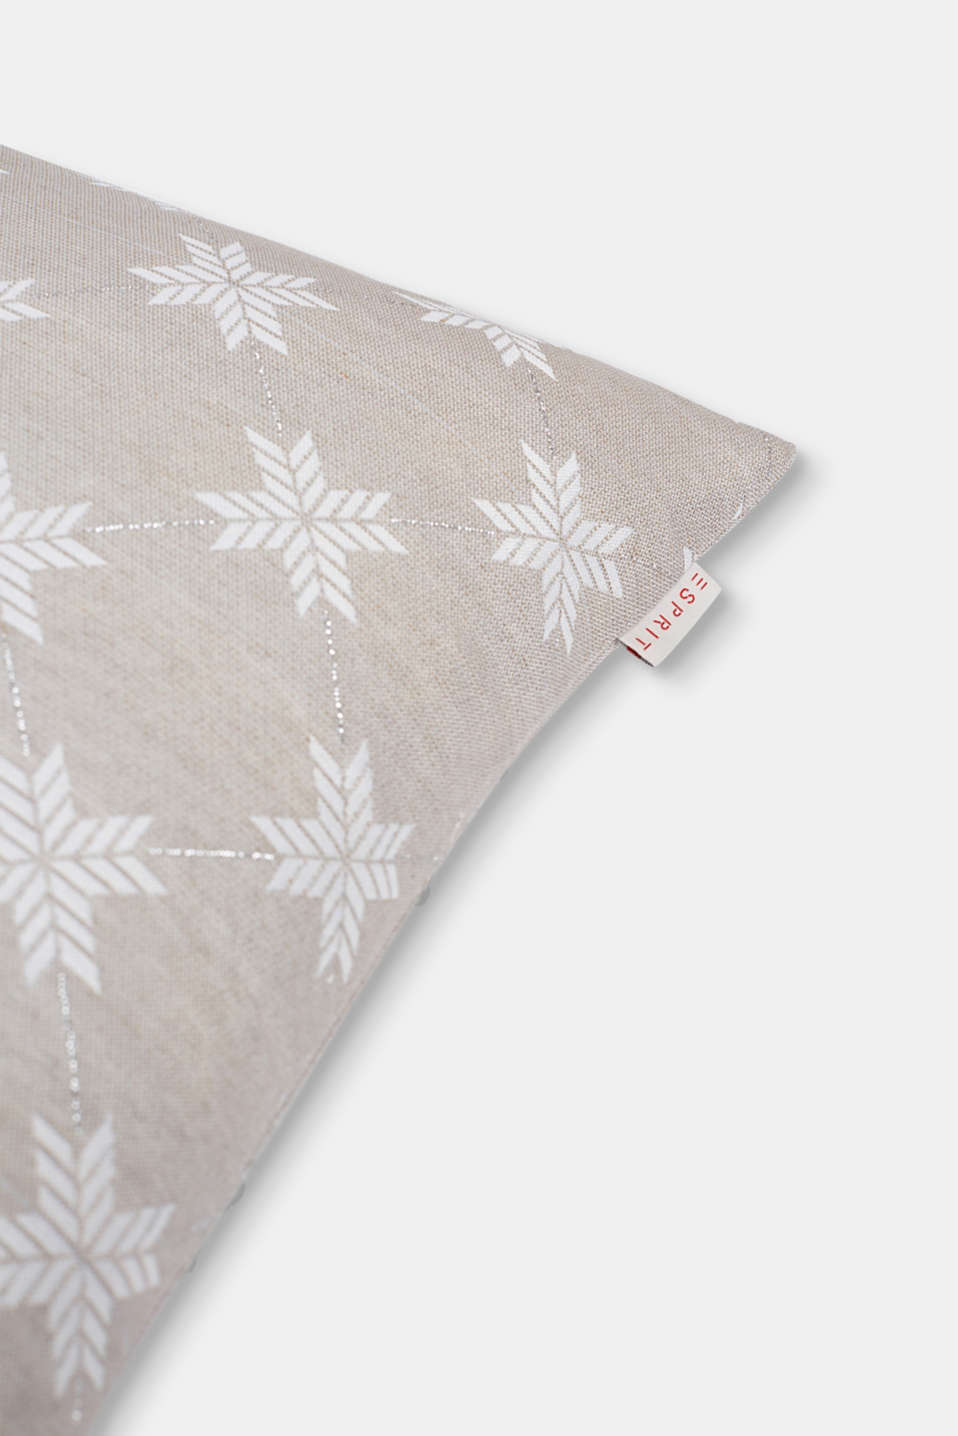 Cushion cover with a star motif, NATURE, detail image number 1